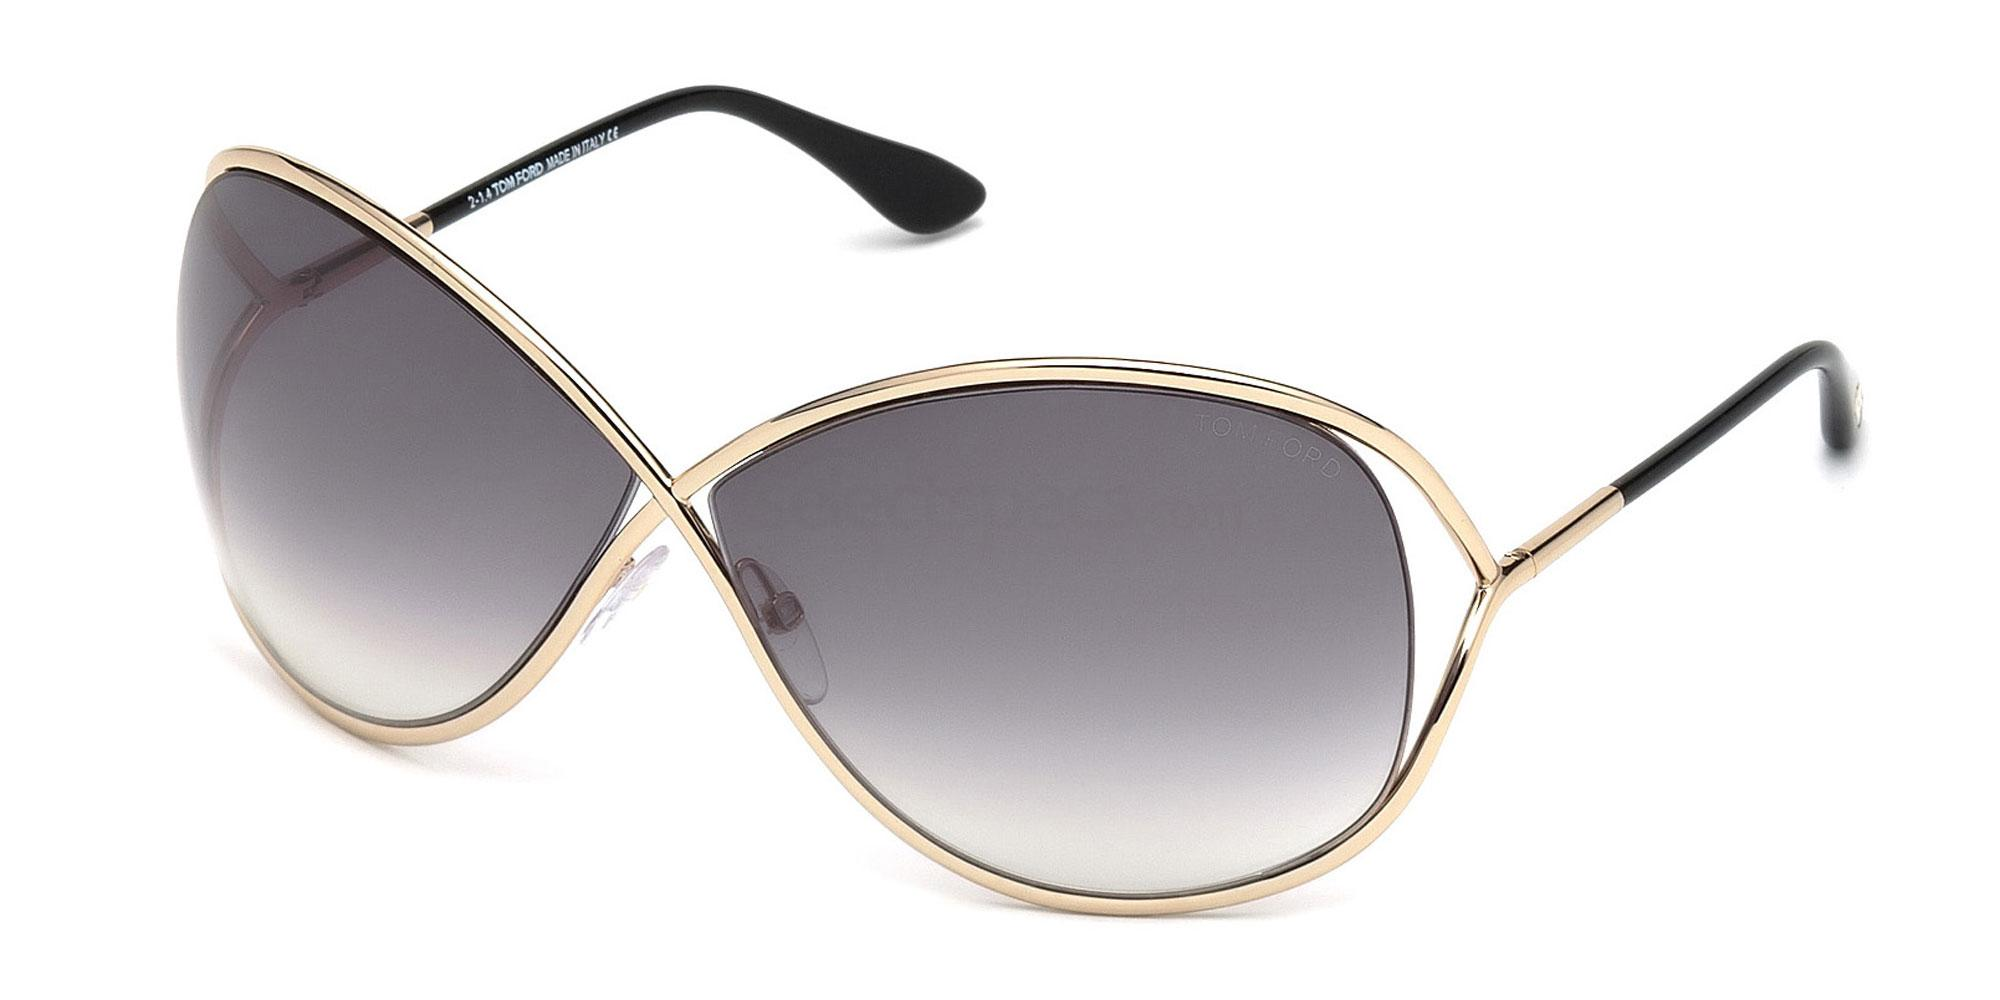 28B FT0130 Miranda Sunglasses, Tom Ford